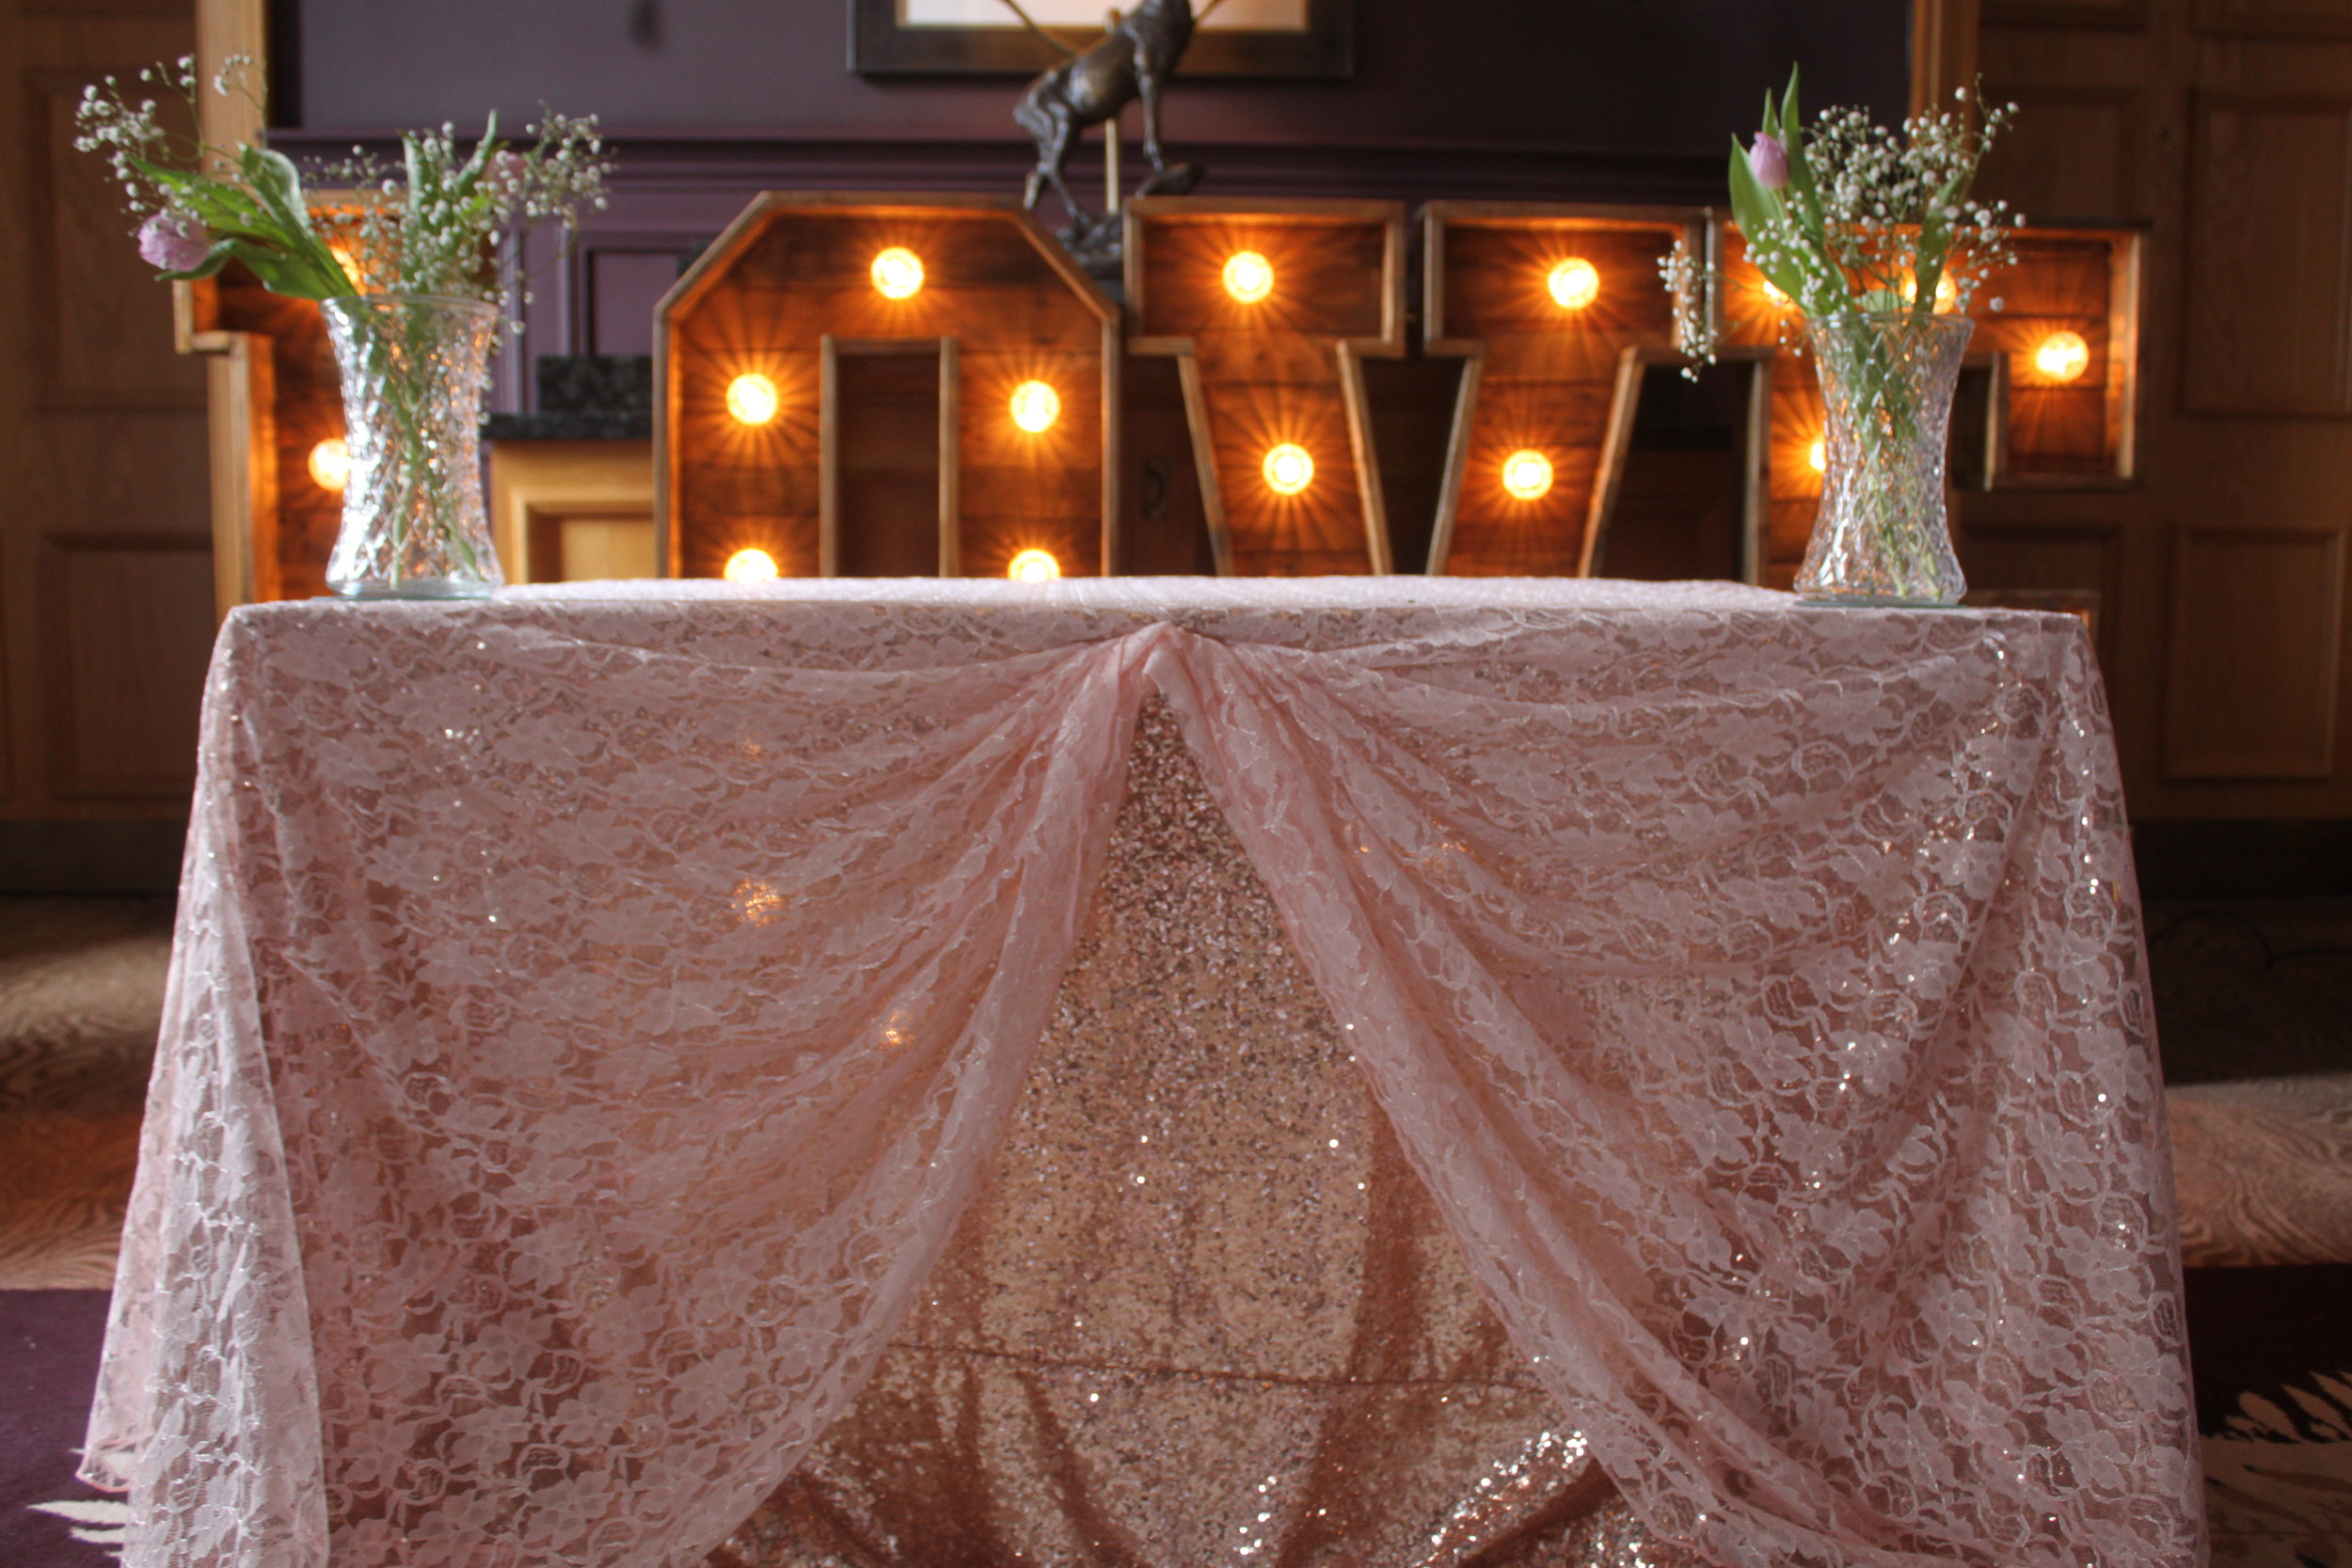 Cake & Registry - Cover your cake and registry table in style with our choice of stylish coverings. Choose from LED skirting, lace and sequin covers in a choice of colours and styles.Hire from only £40